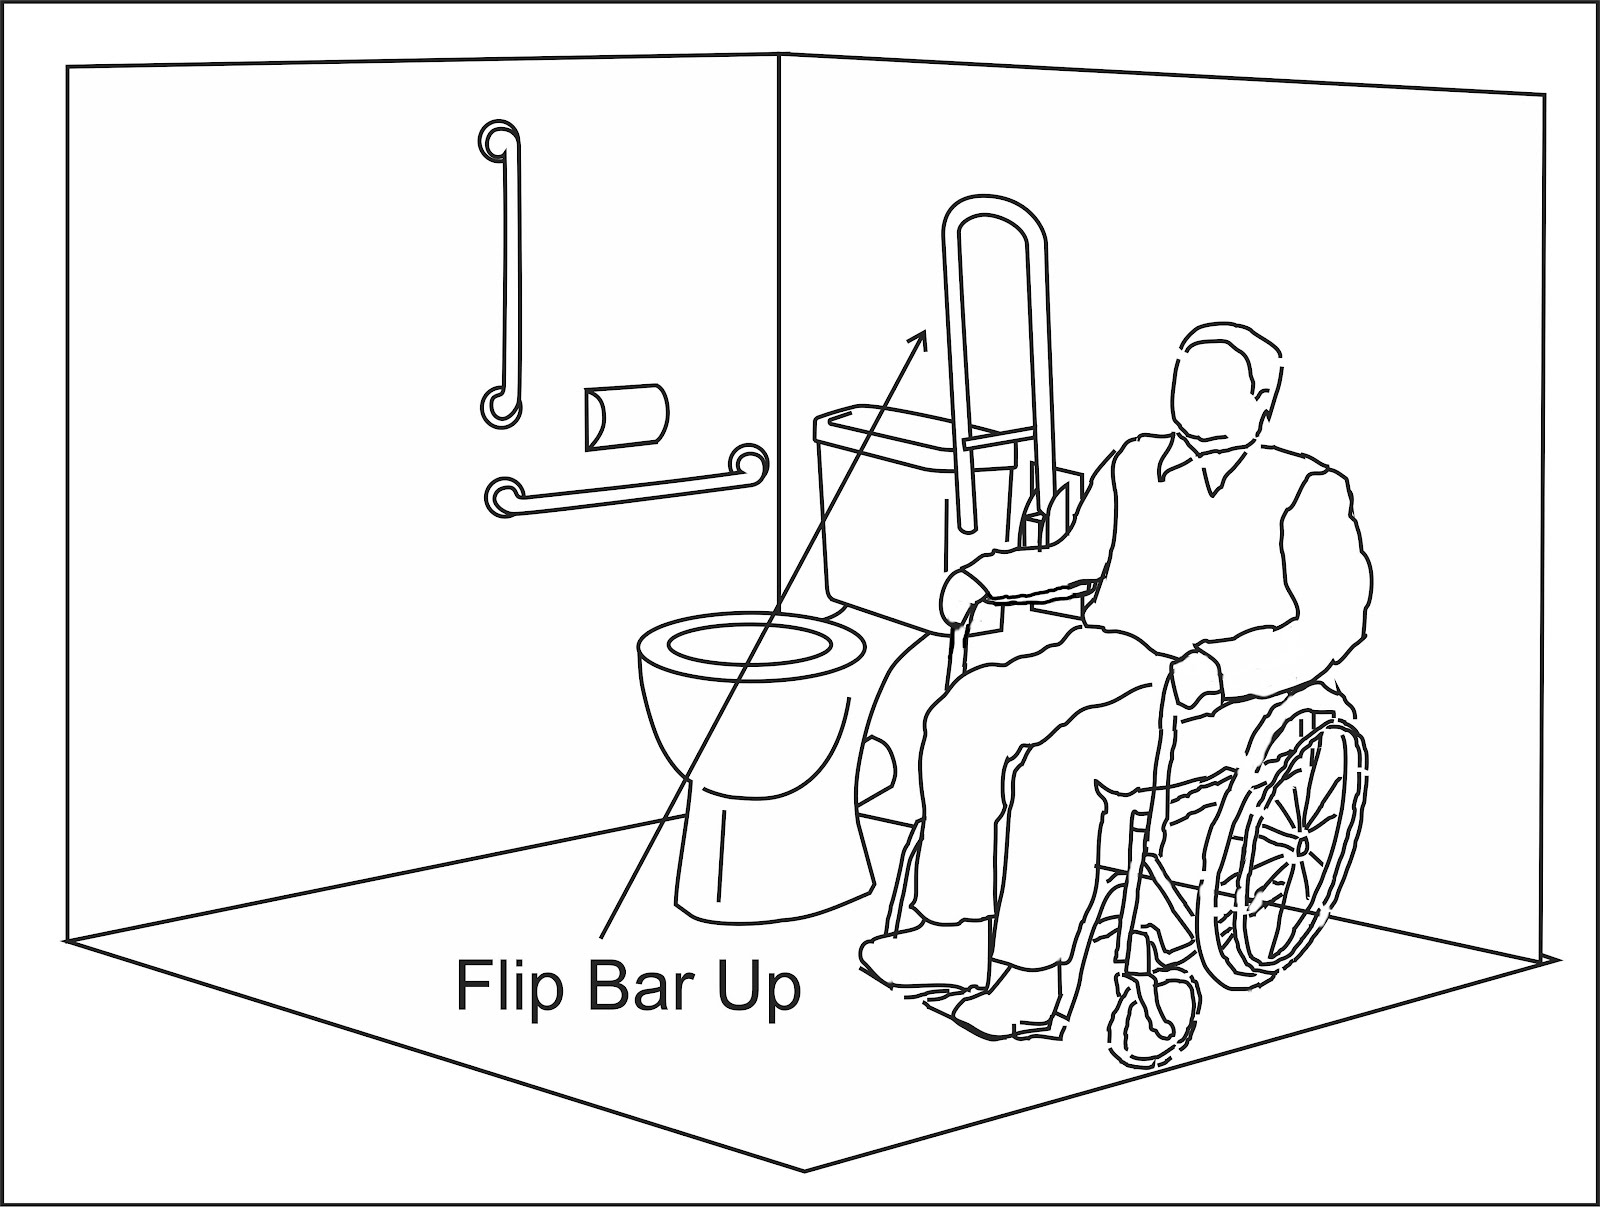 dimensions of a disabled toilet.  Wheelchair Access Penang Wapenang Toilet WC For Disabled People